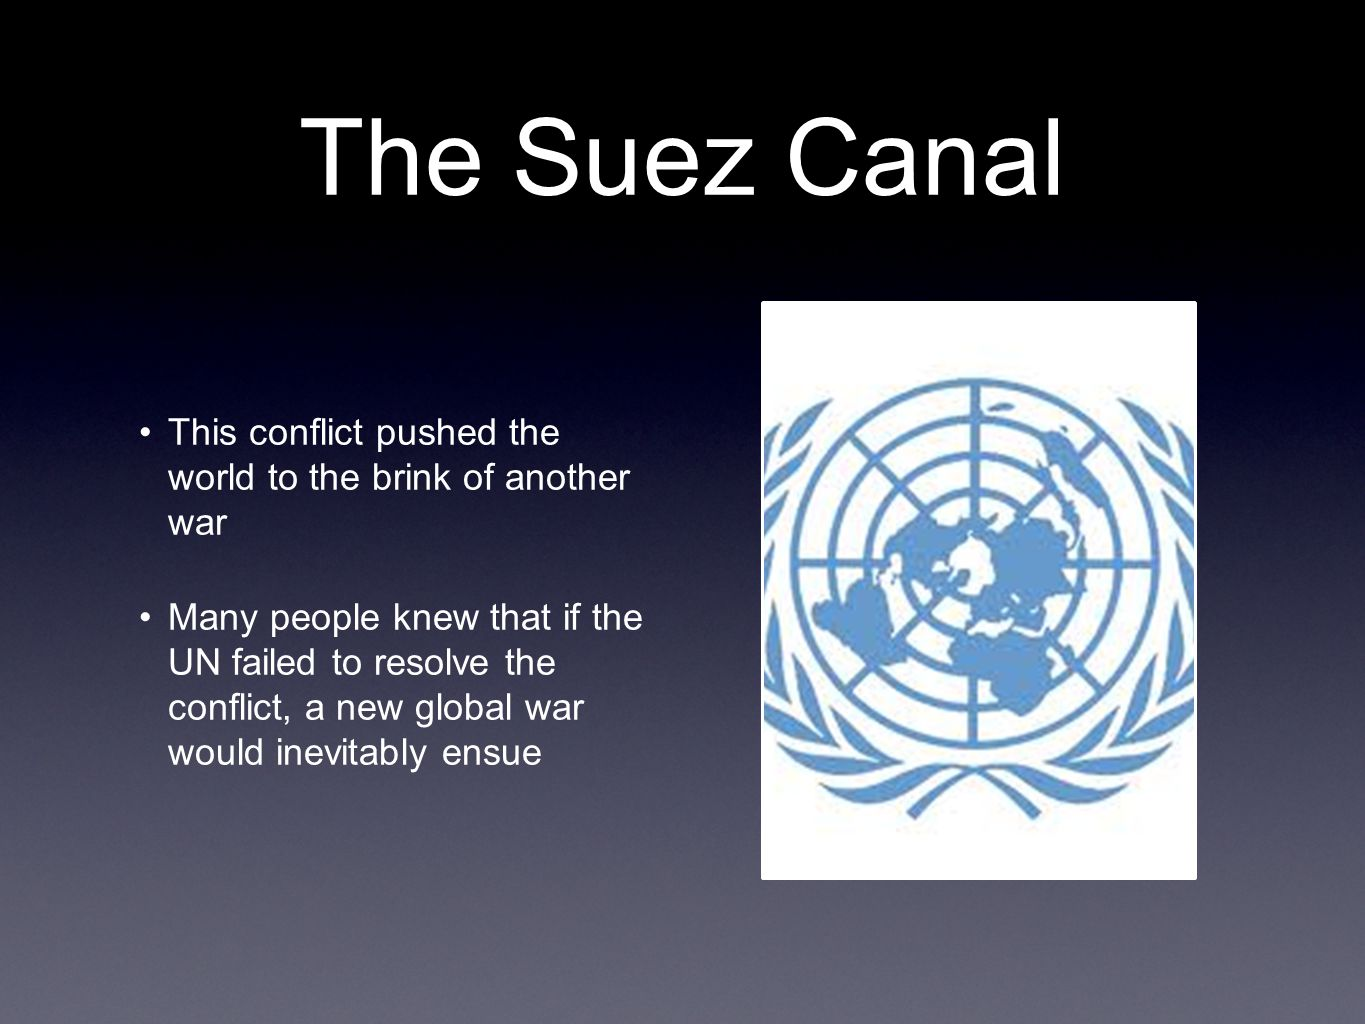 The Suez Canal This conflict pushed the world to the brink of another war Many people knew that if the UN failed to resolve the conflict, a new global war would inevitably ensue